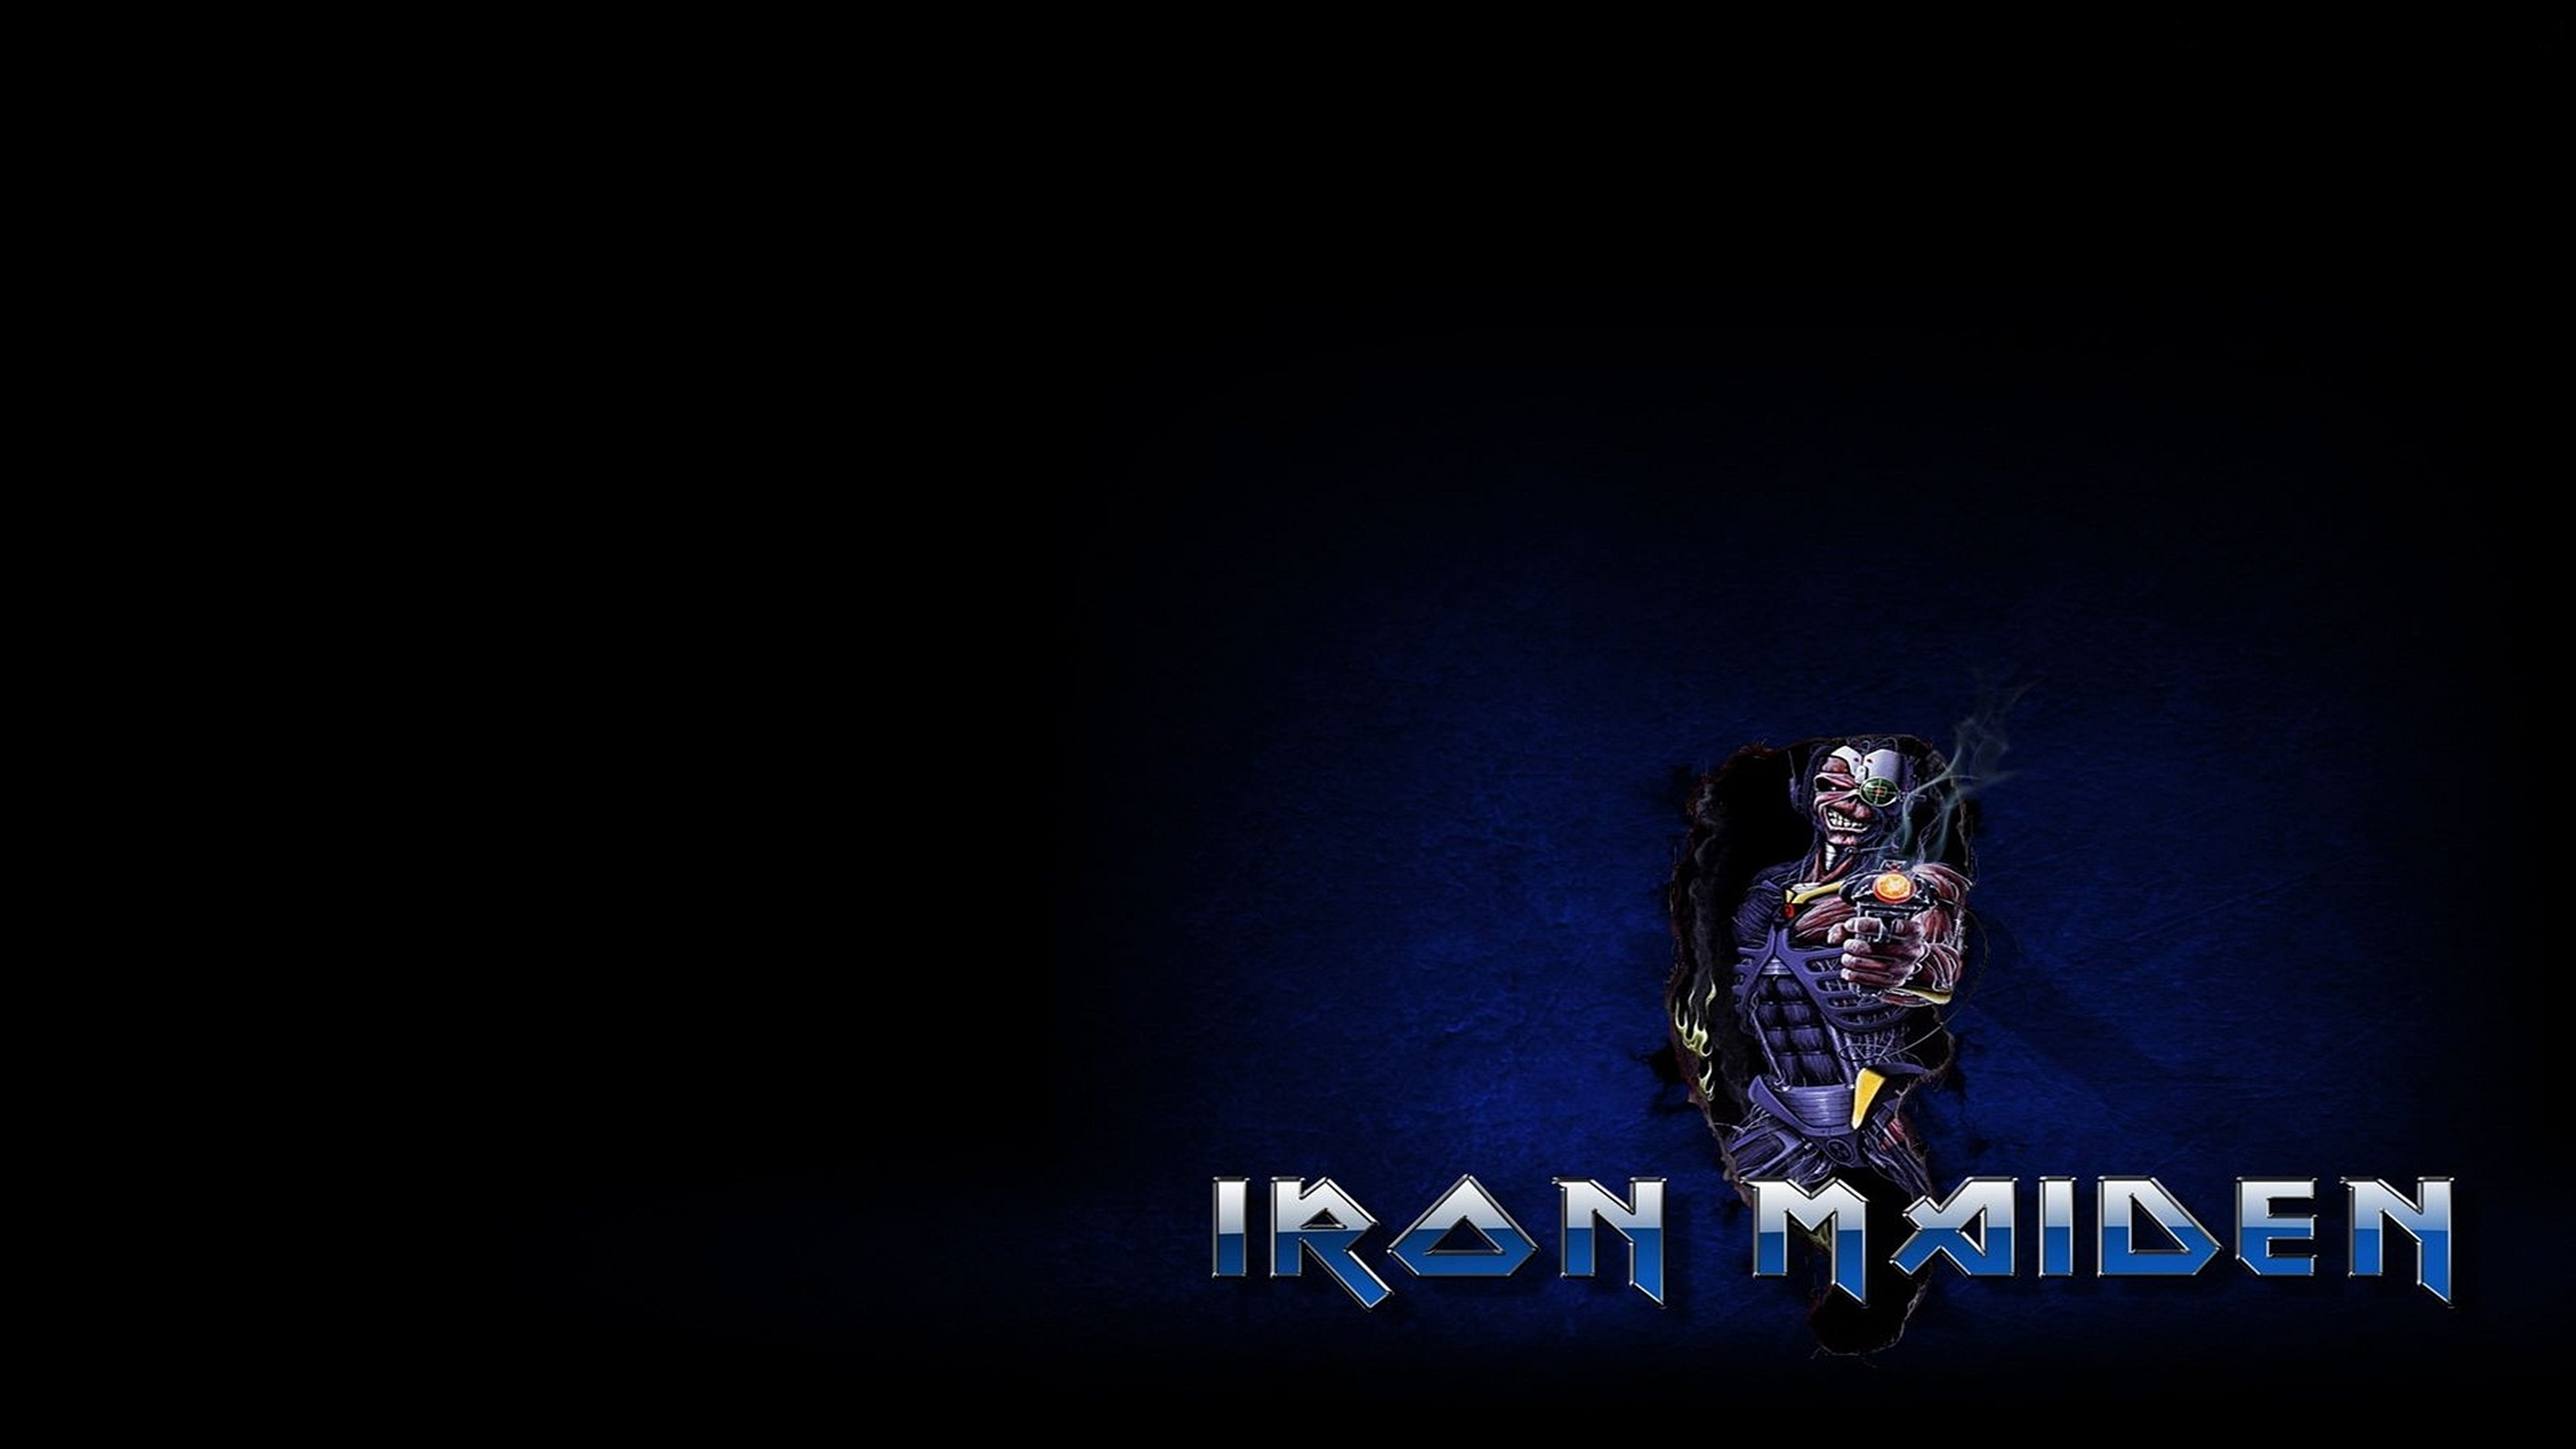 Iphone wallpaper iron maiden - Iron Maiden Wallpapers Pictures Images